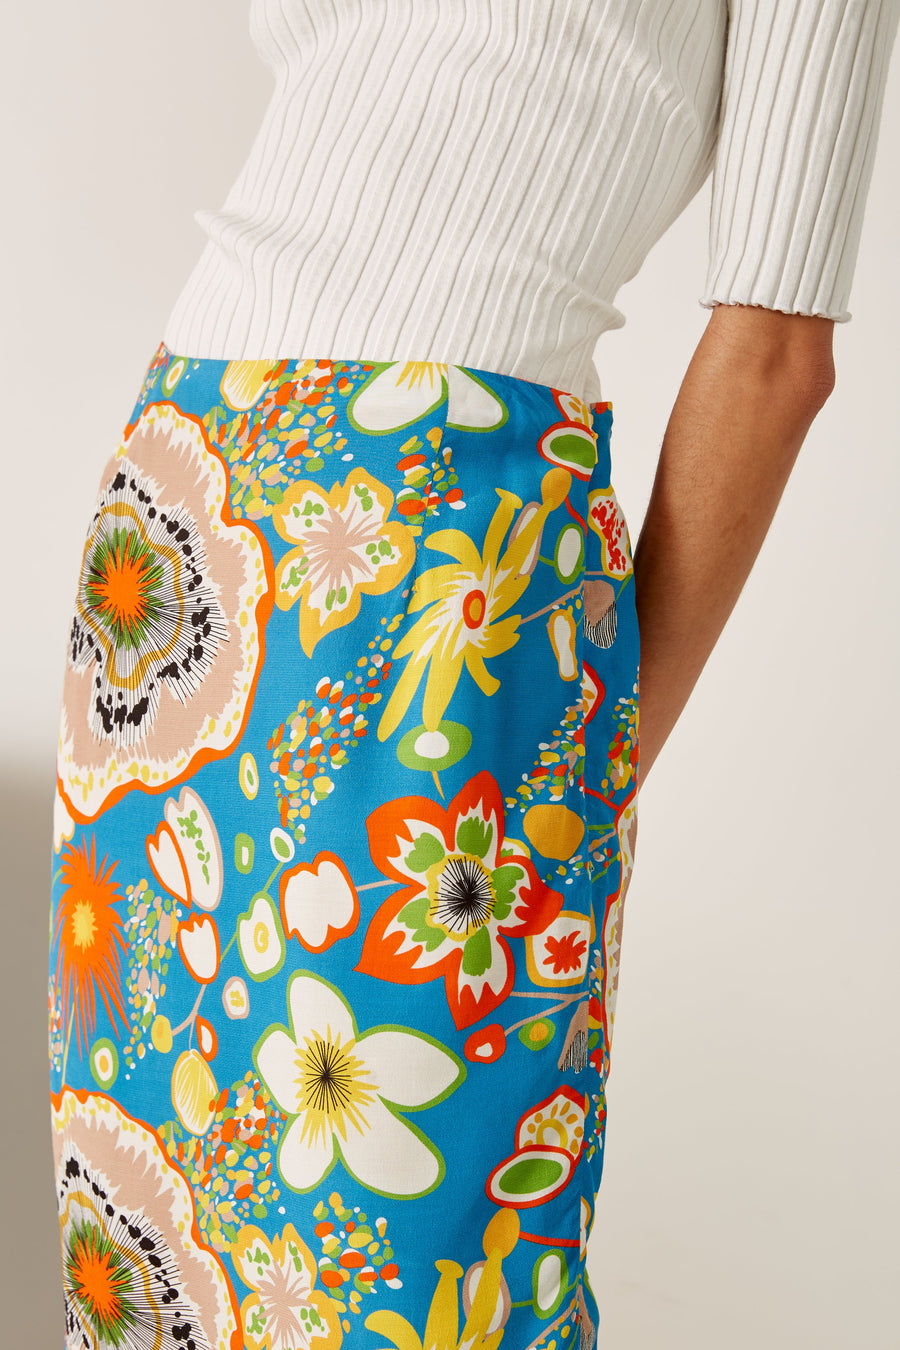 Ligo Pencil Skirt in Blue Floral Print